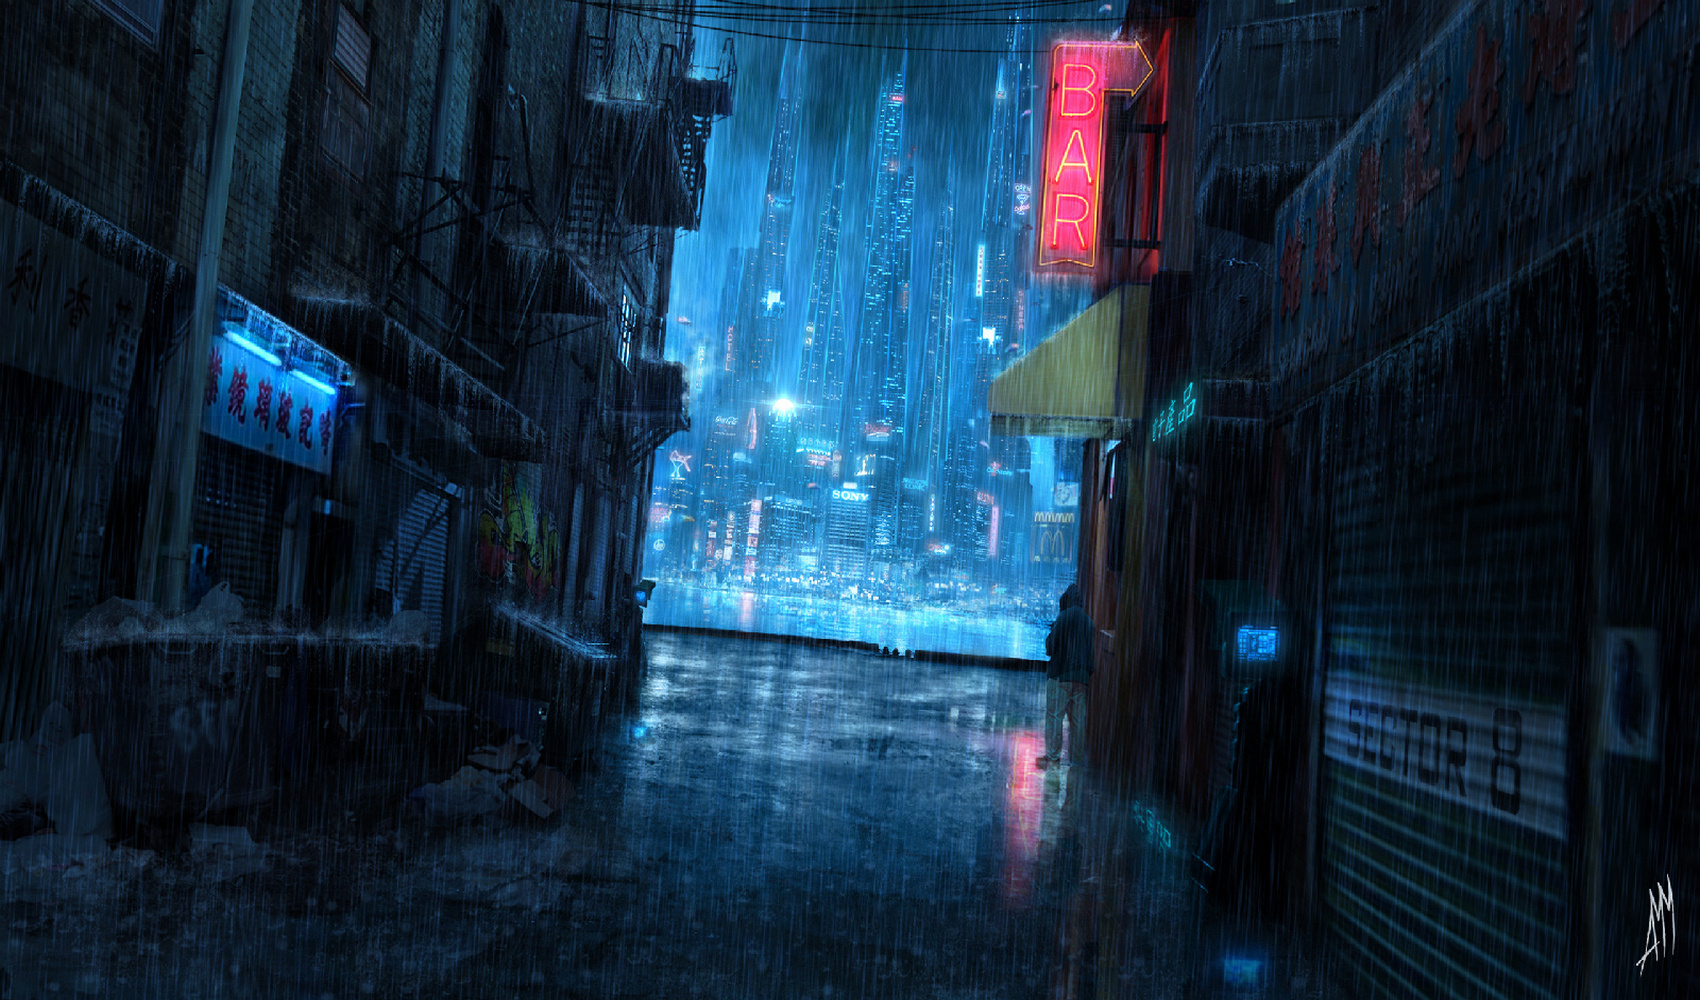 Cyberpunk, rain, city, lights, night, future - HD wallpaper desktop backgrounds